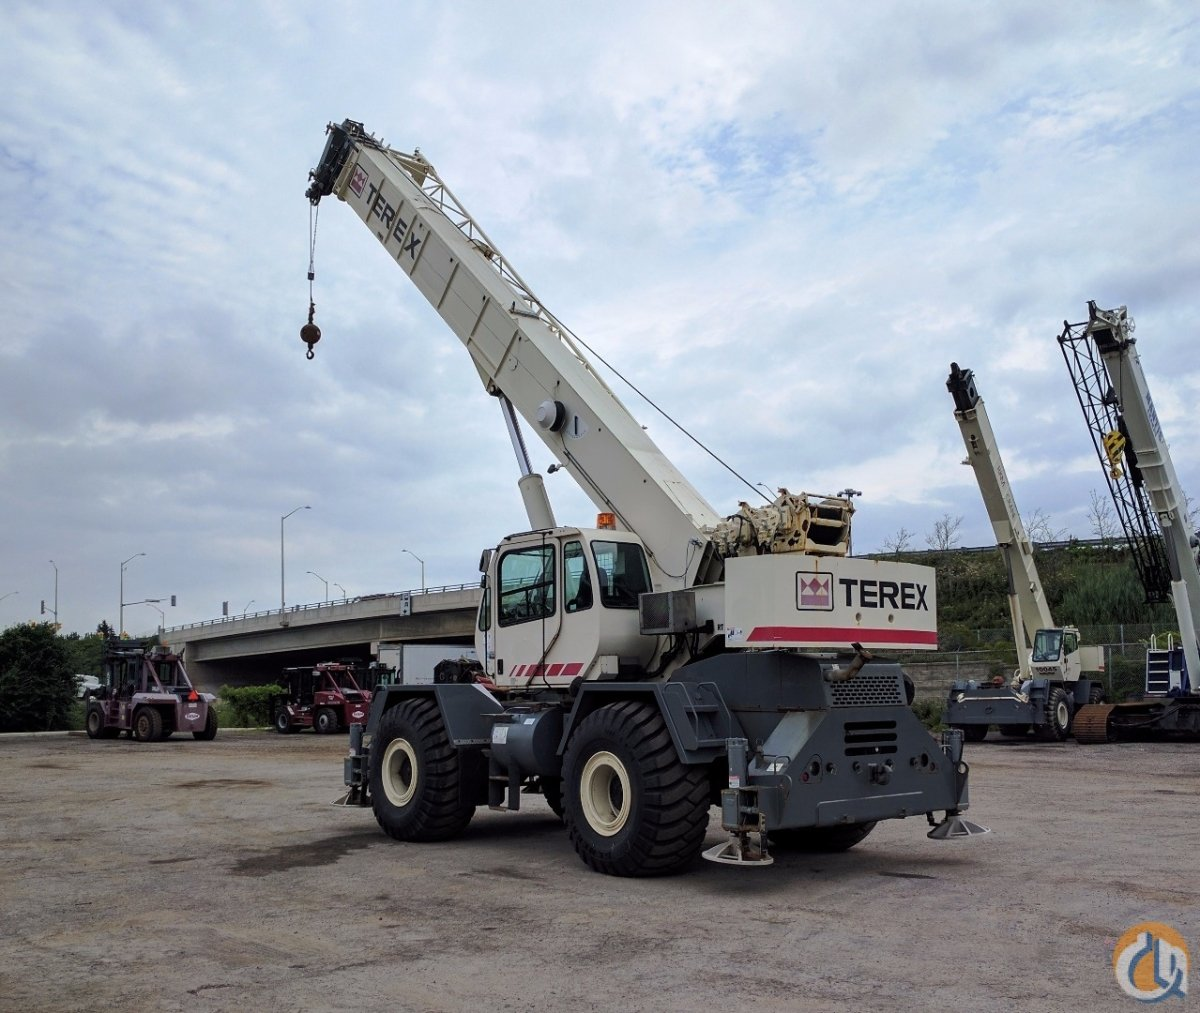 2007 Terex RT 555-1 Crane for Sale in Oakville Ontario on CraneNetwork.com